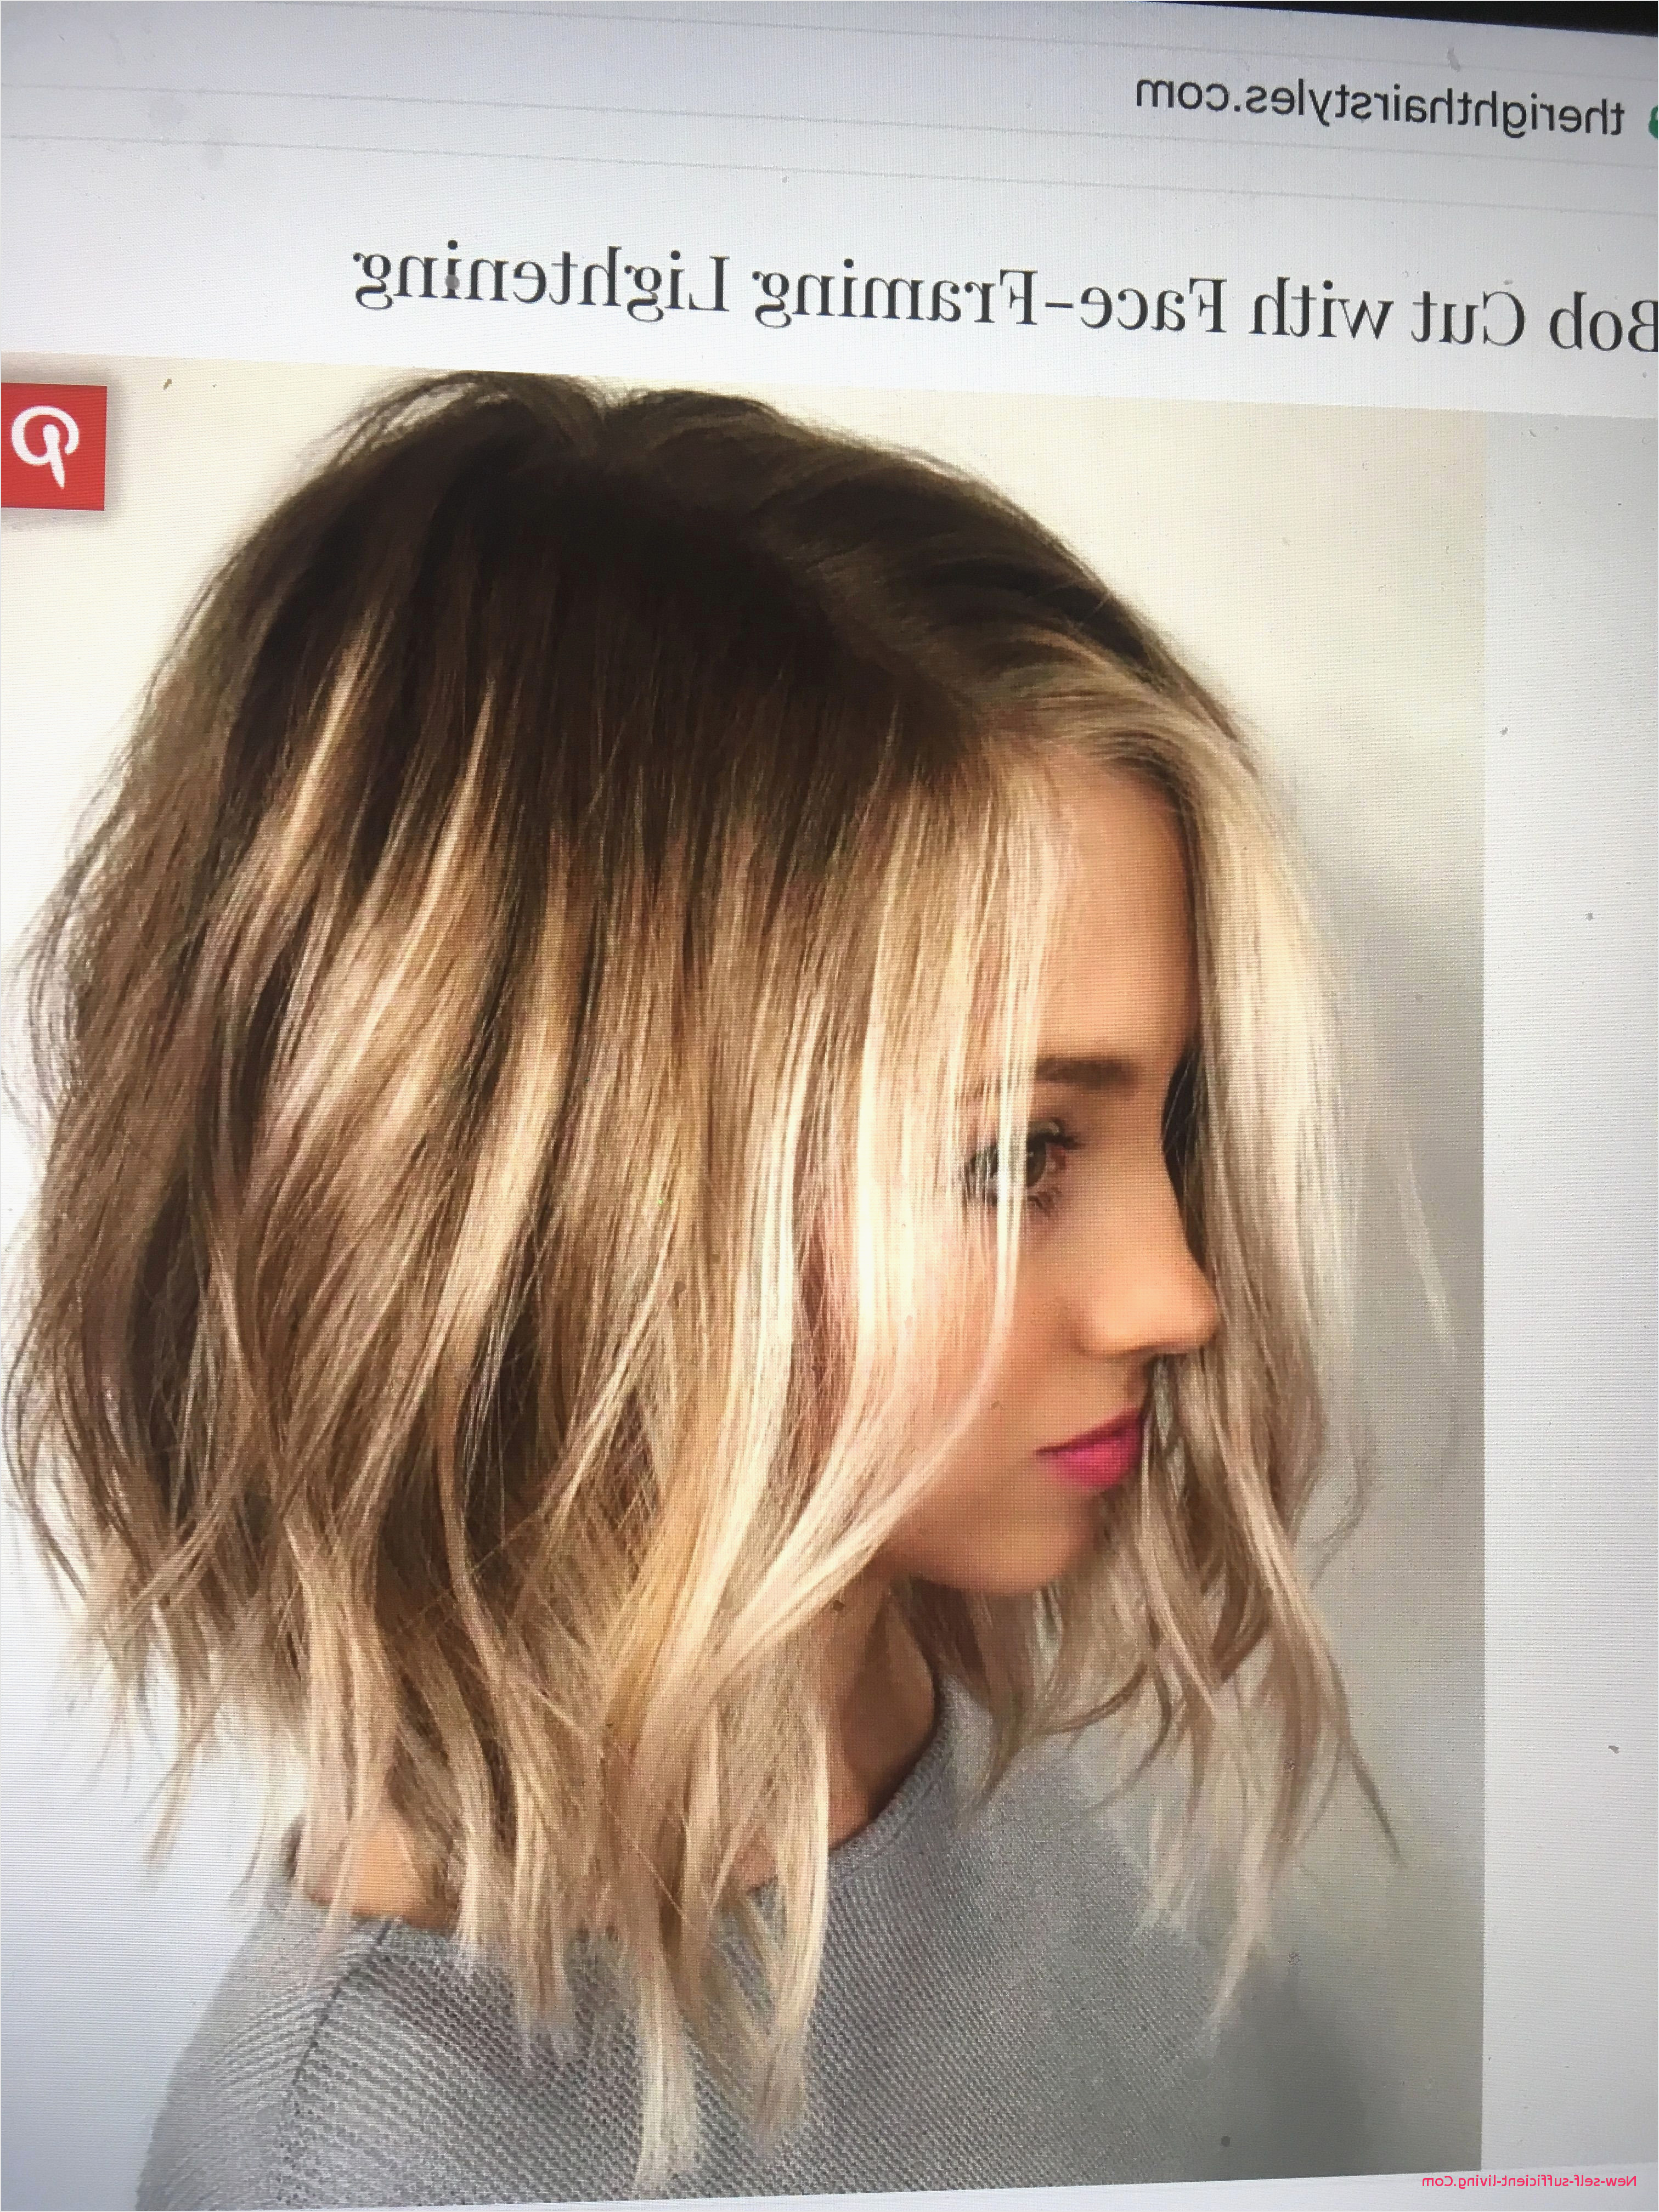 Hairstyles With Glasses And Bangs Fresh Luxury Medium Hairstyle With Throughout Current Medium Hairstyles With Glasses (View 15 of 20)